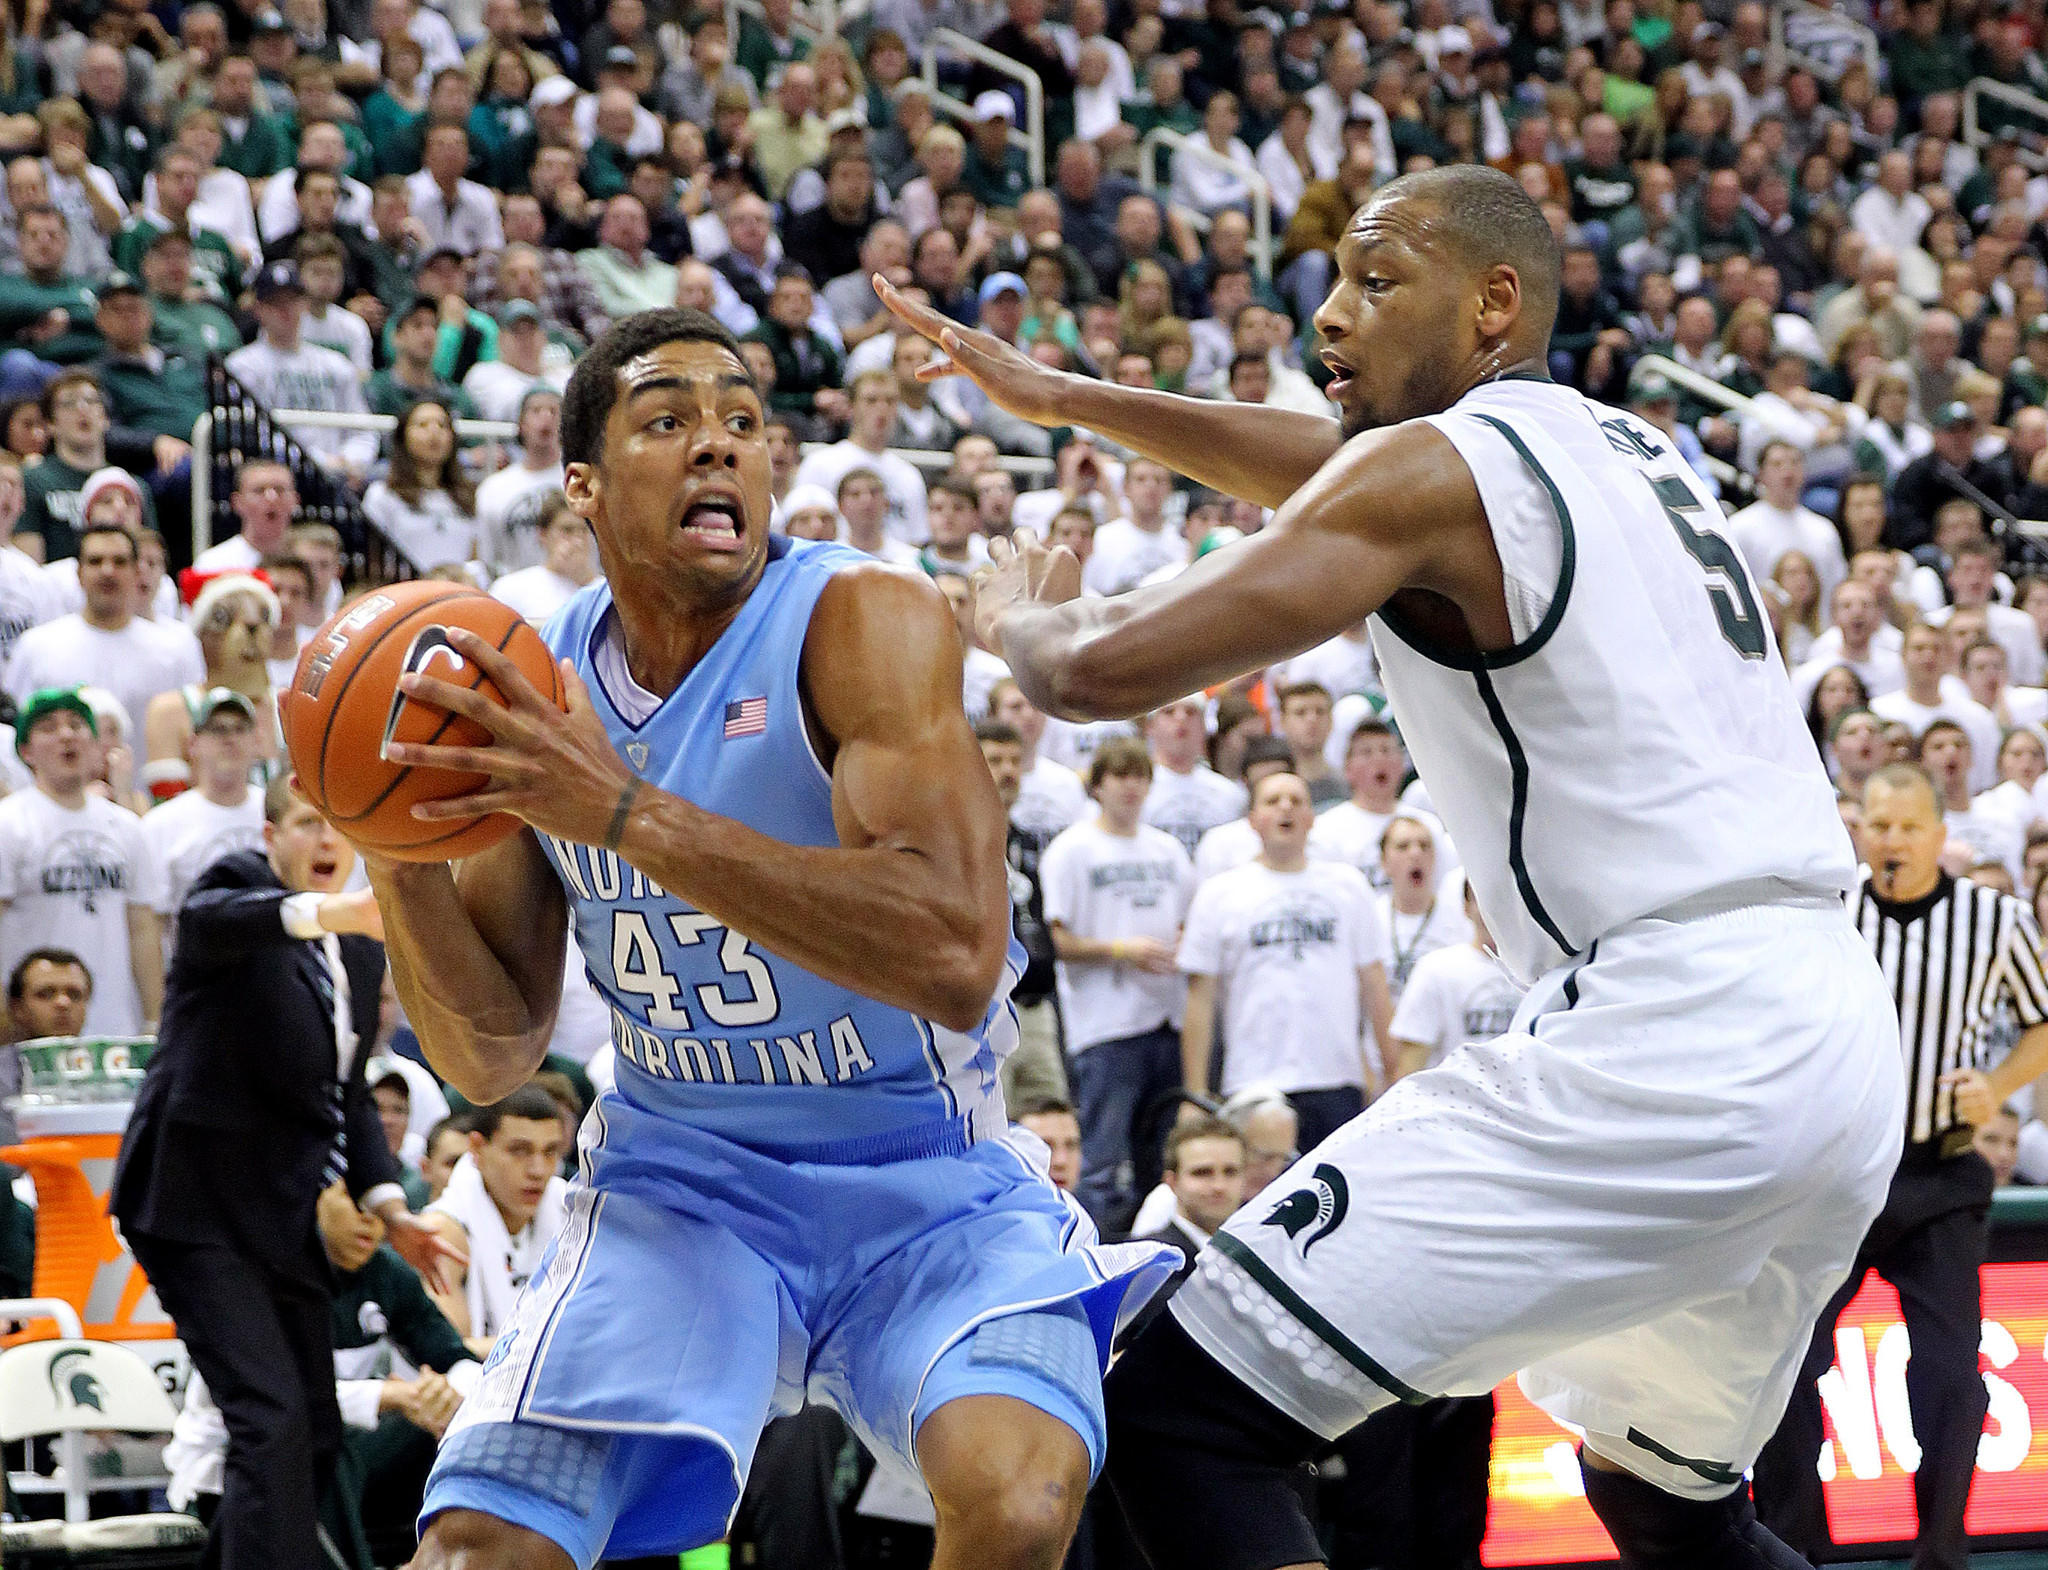 North Carolina's James Michael McAdoo drives the baseline against Michigan State's Adreian Payne during the first half.